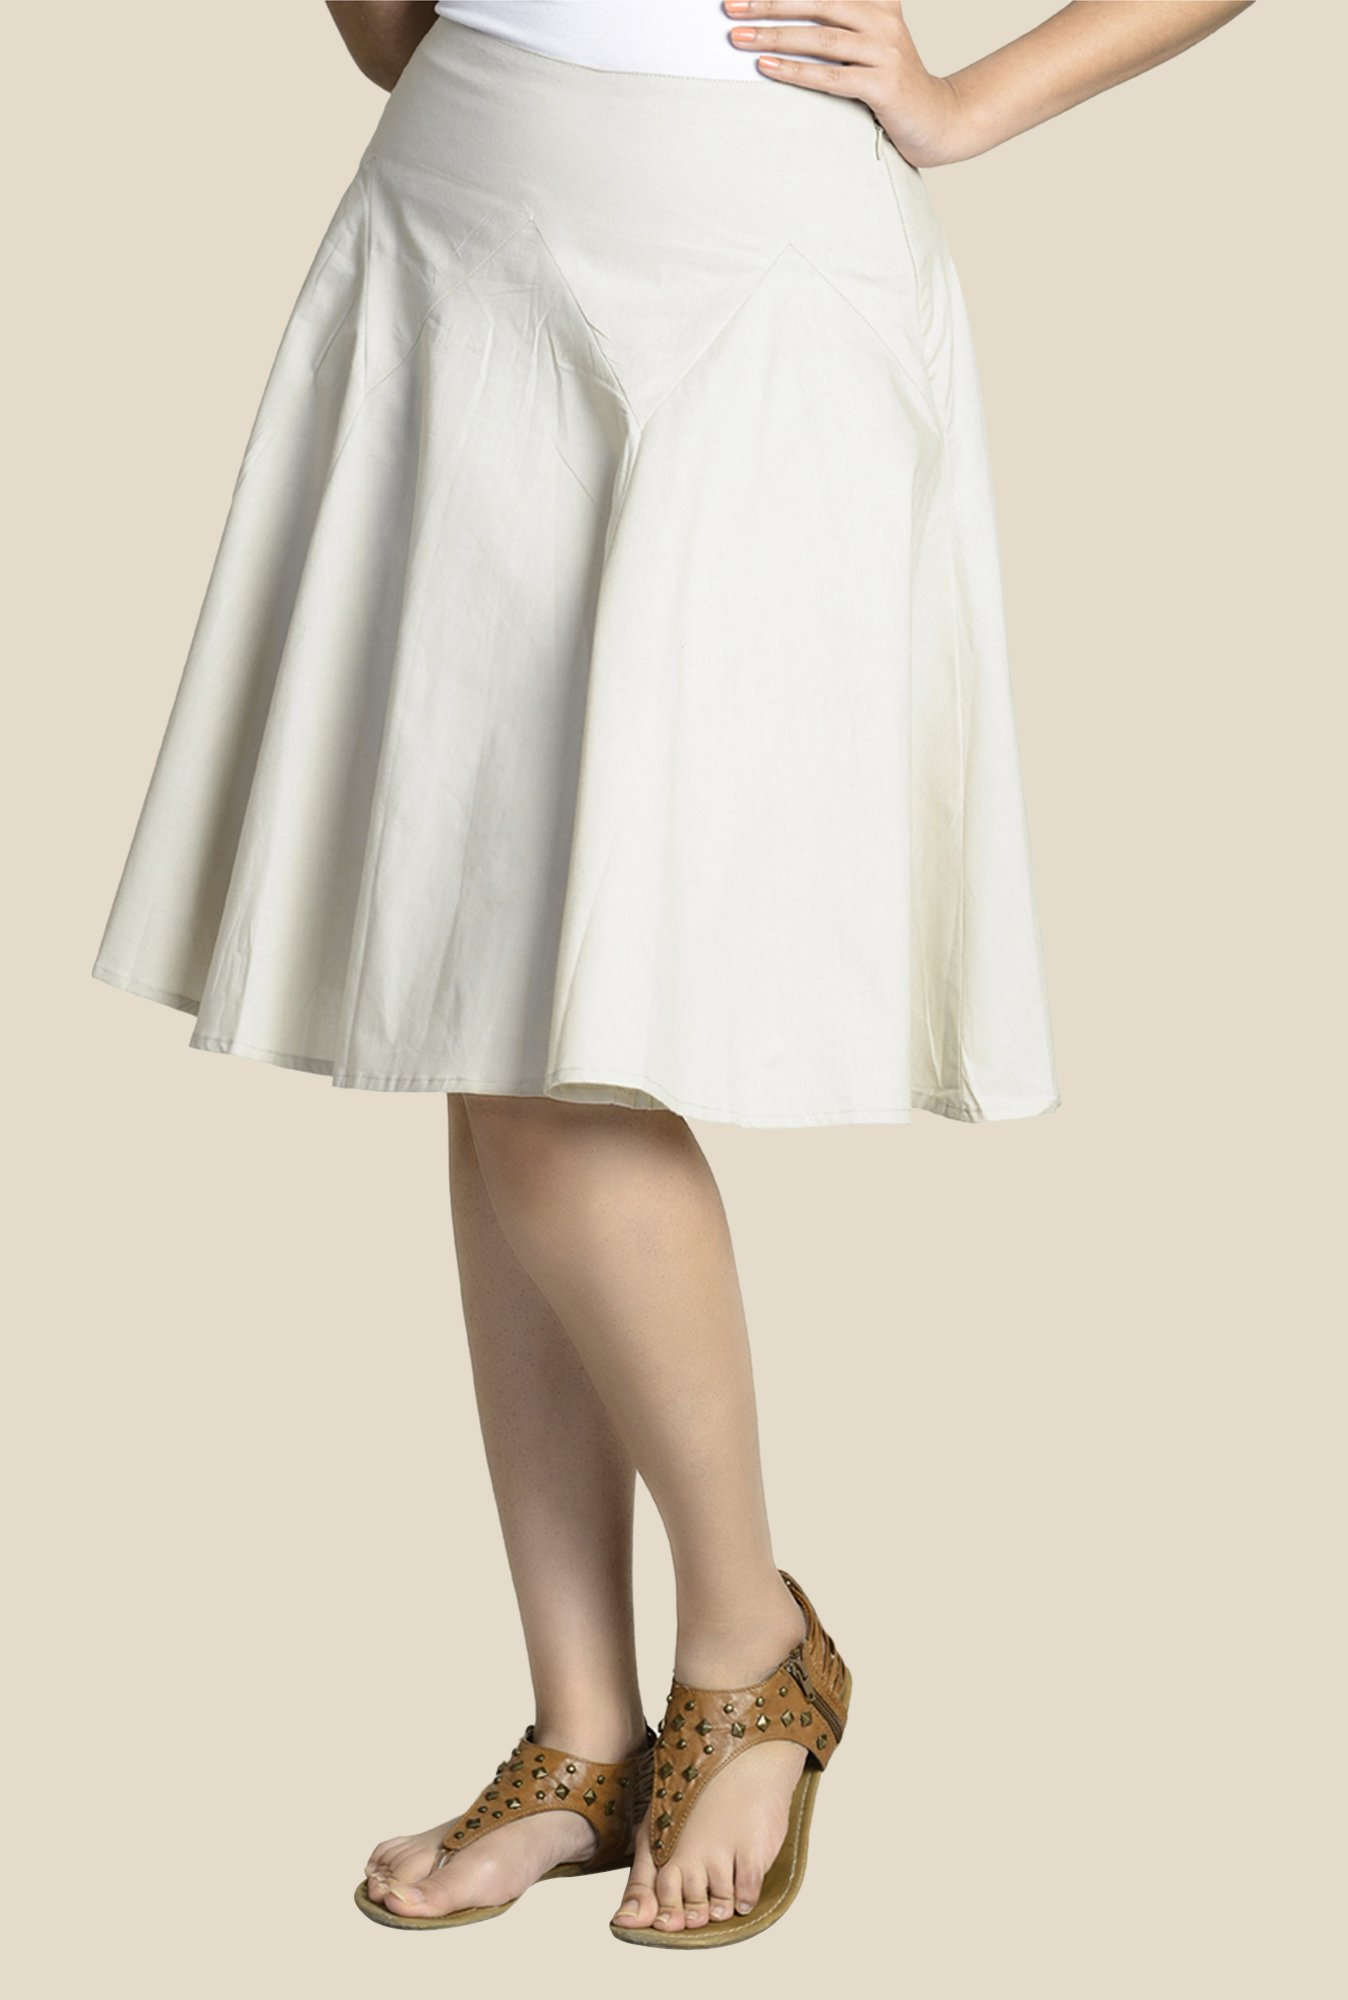 Fabindia Off White Solid Skirt